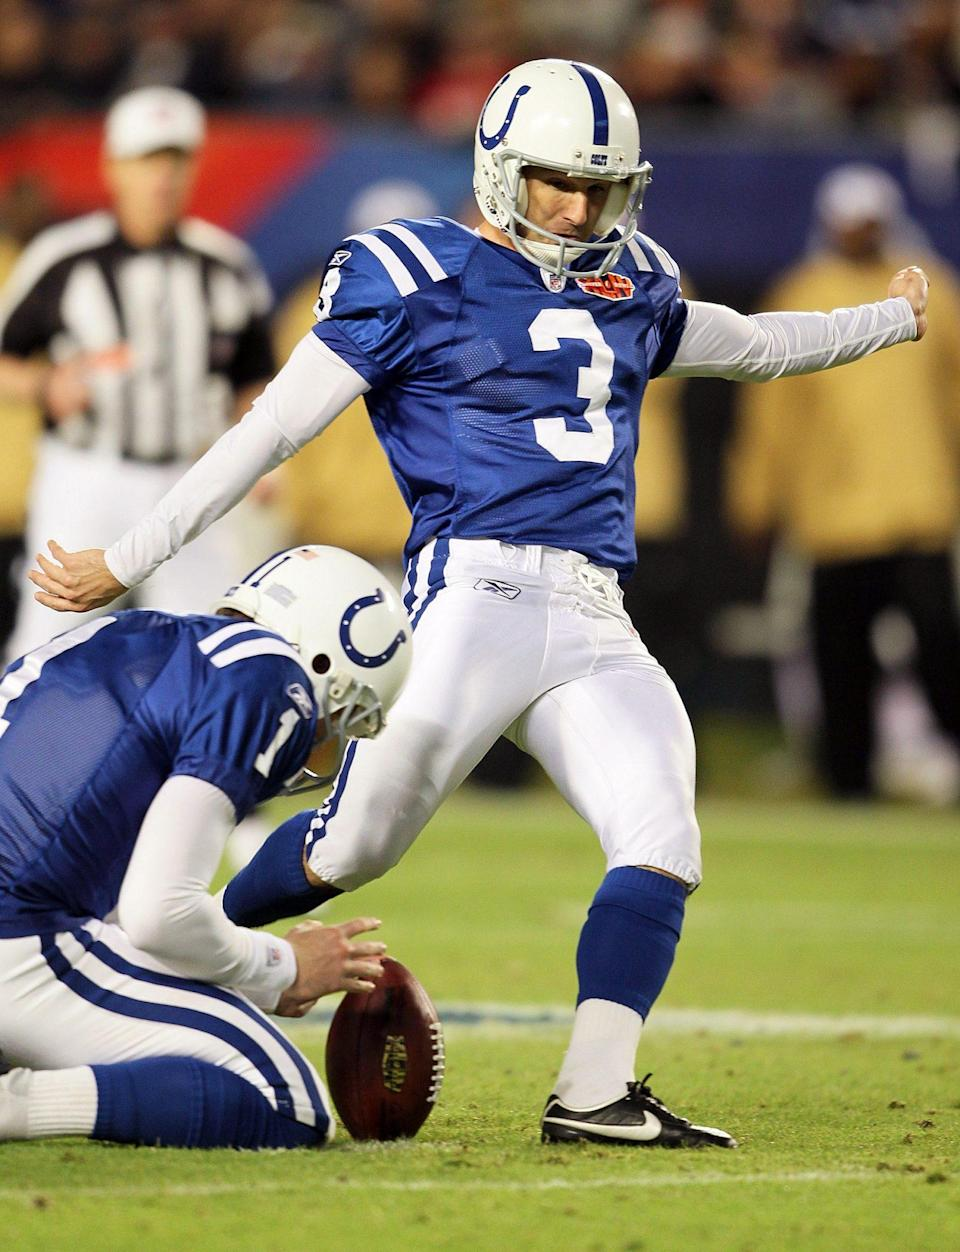 <p><strong>Age at the time of Super Bowl XLIV:</strong> 42 years old </p> <p>Stover, who was the starting kicker for the Indianapolis Colts, was 42 years old when he appeared in the 2010 Super Bowl. </p>